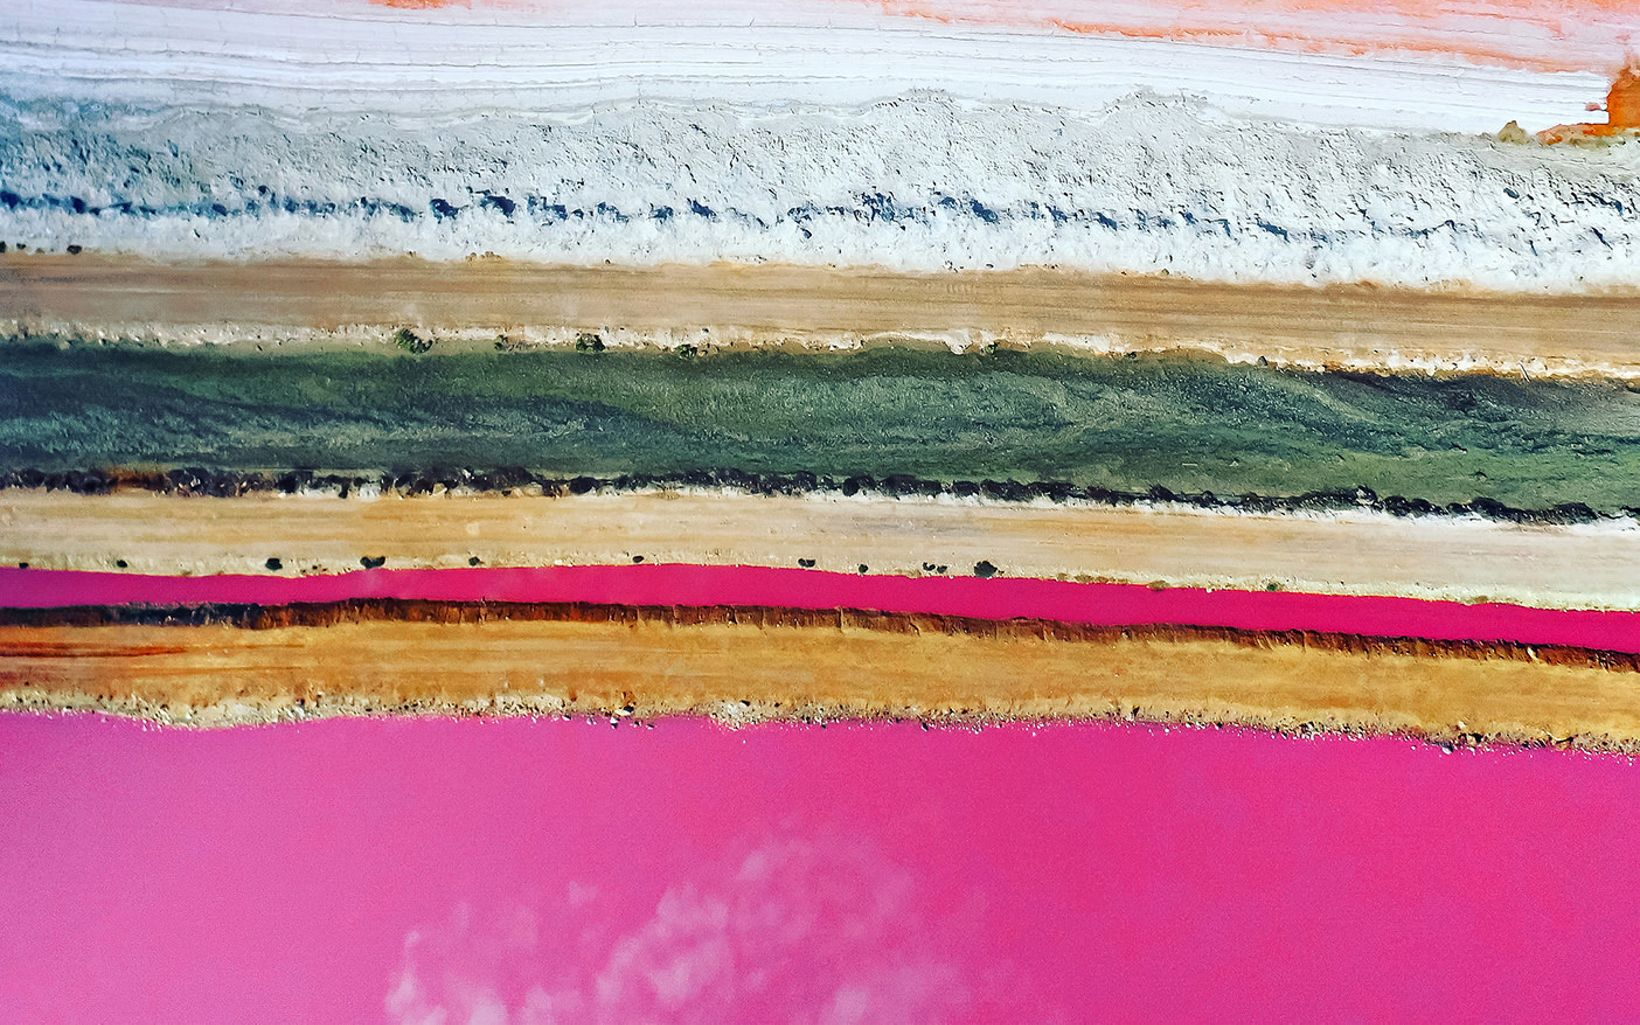 Drone photo showing the pink hues of a pink lake called Hutt Lagoon, Western Australia.